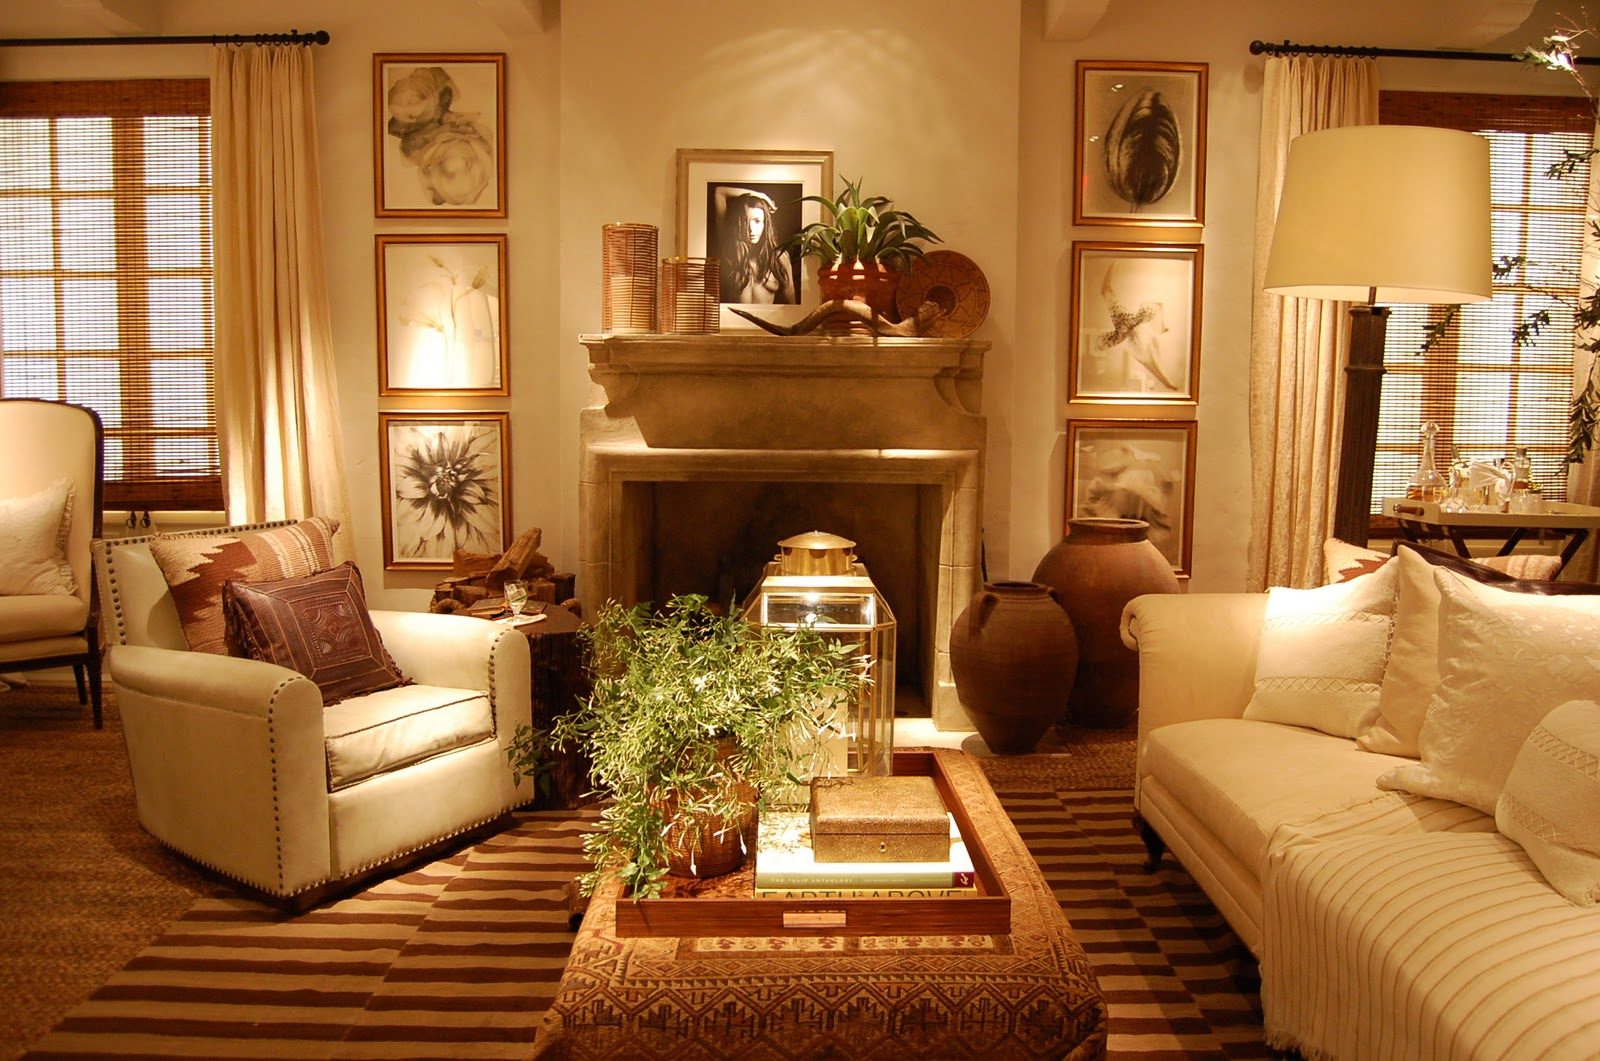 Chic soiree and spring at ralph lauren ellegant home design for Ralph lauren living room designs